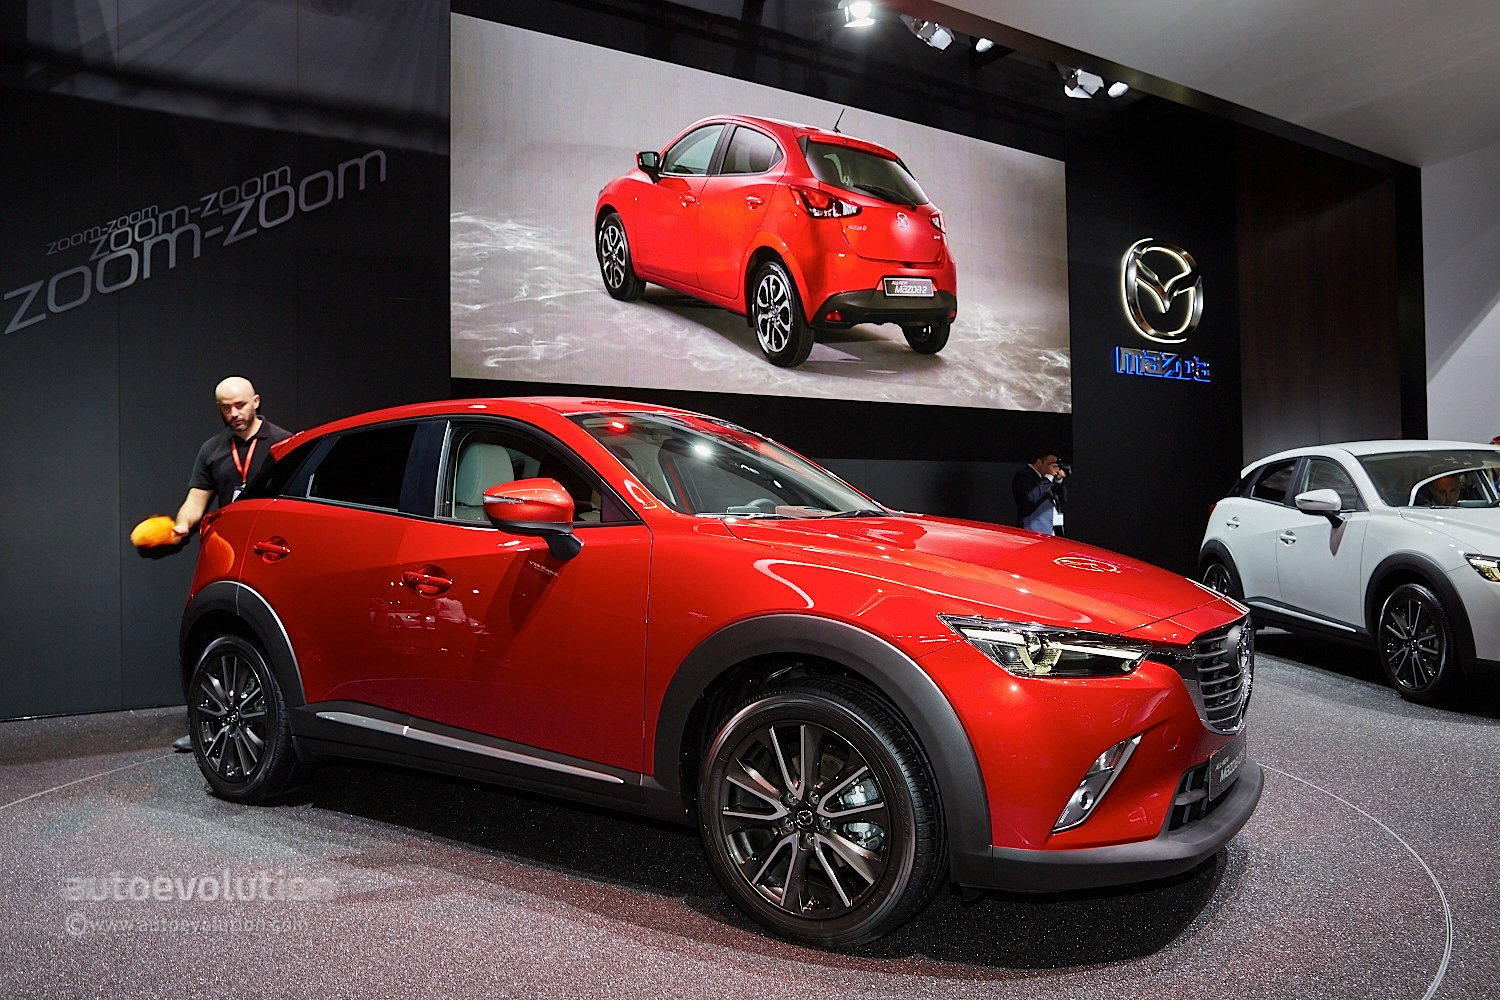 2016 mazda cx 3 fully revealed in geneva with 1 5l diesel. Black Bedroom Furniture Sets. Home Design Ideas